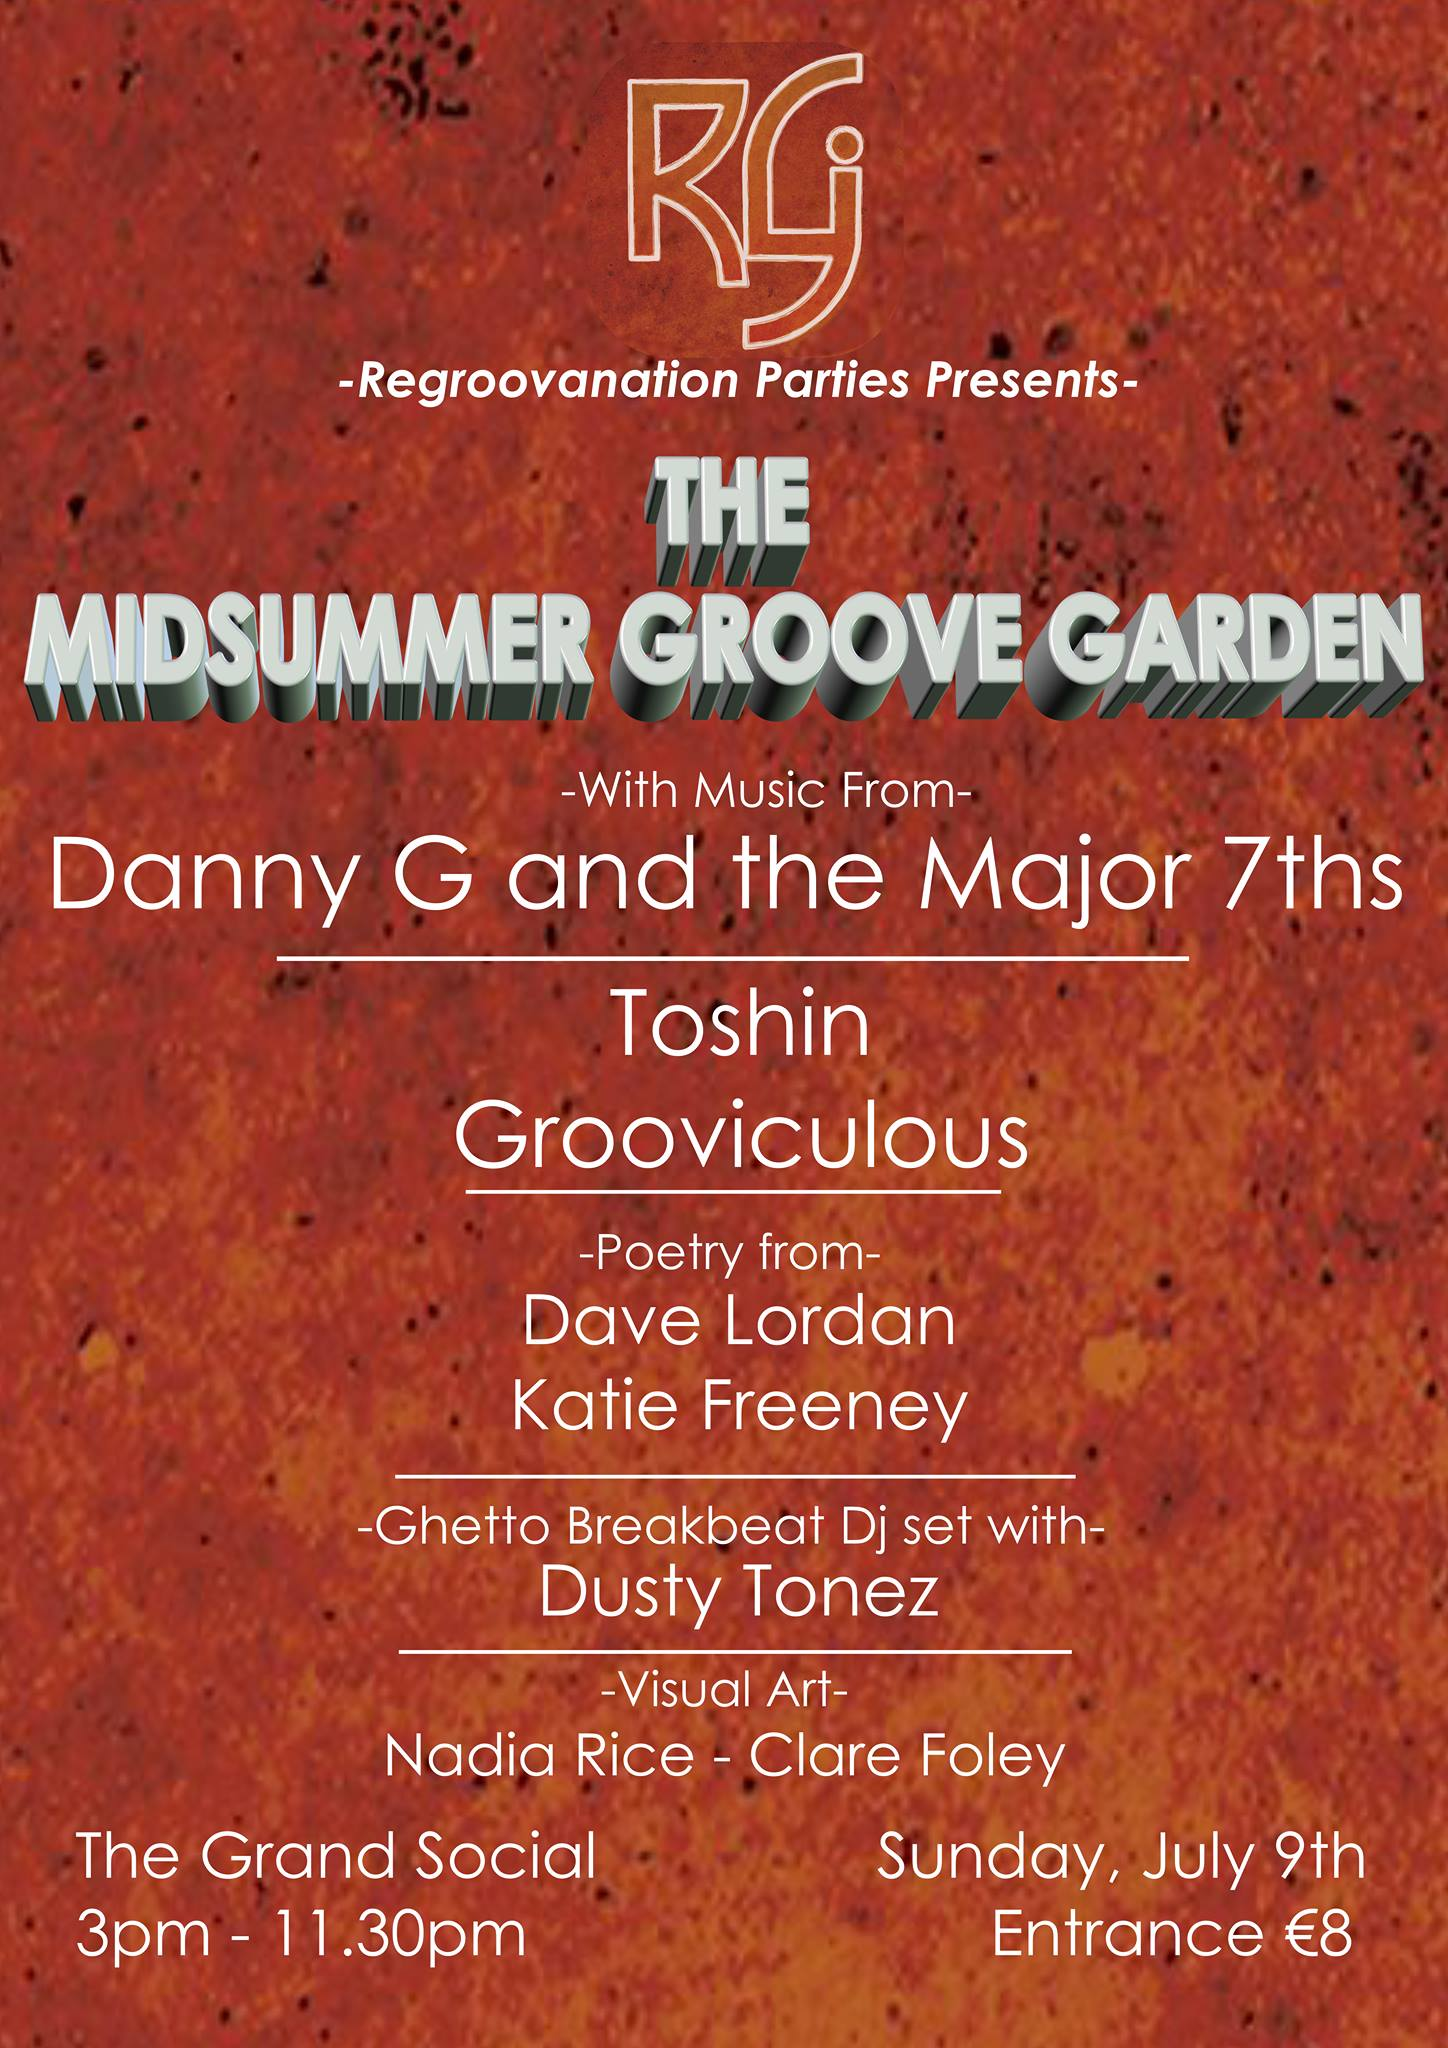 Danny G & the Major 7ths